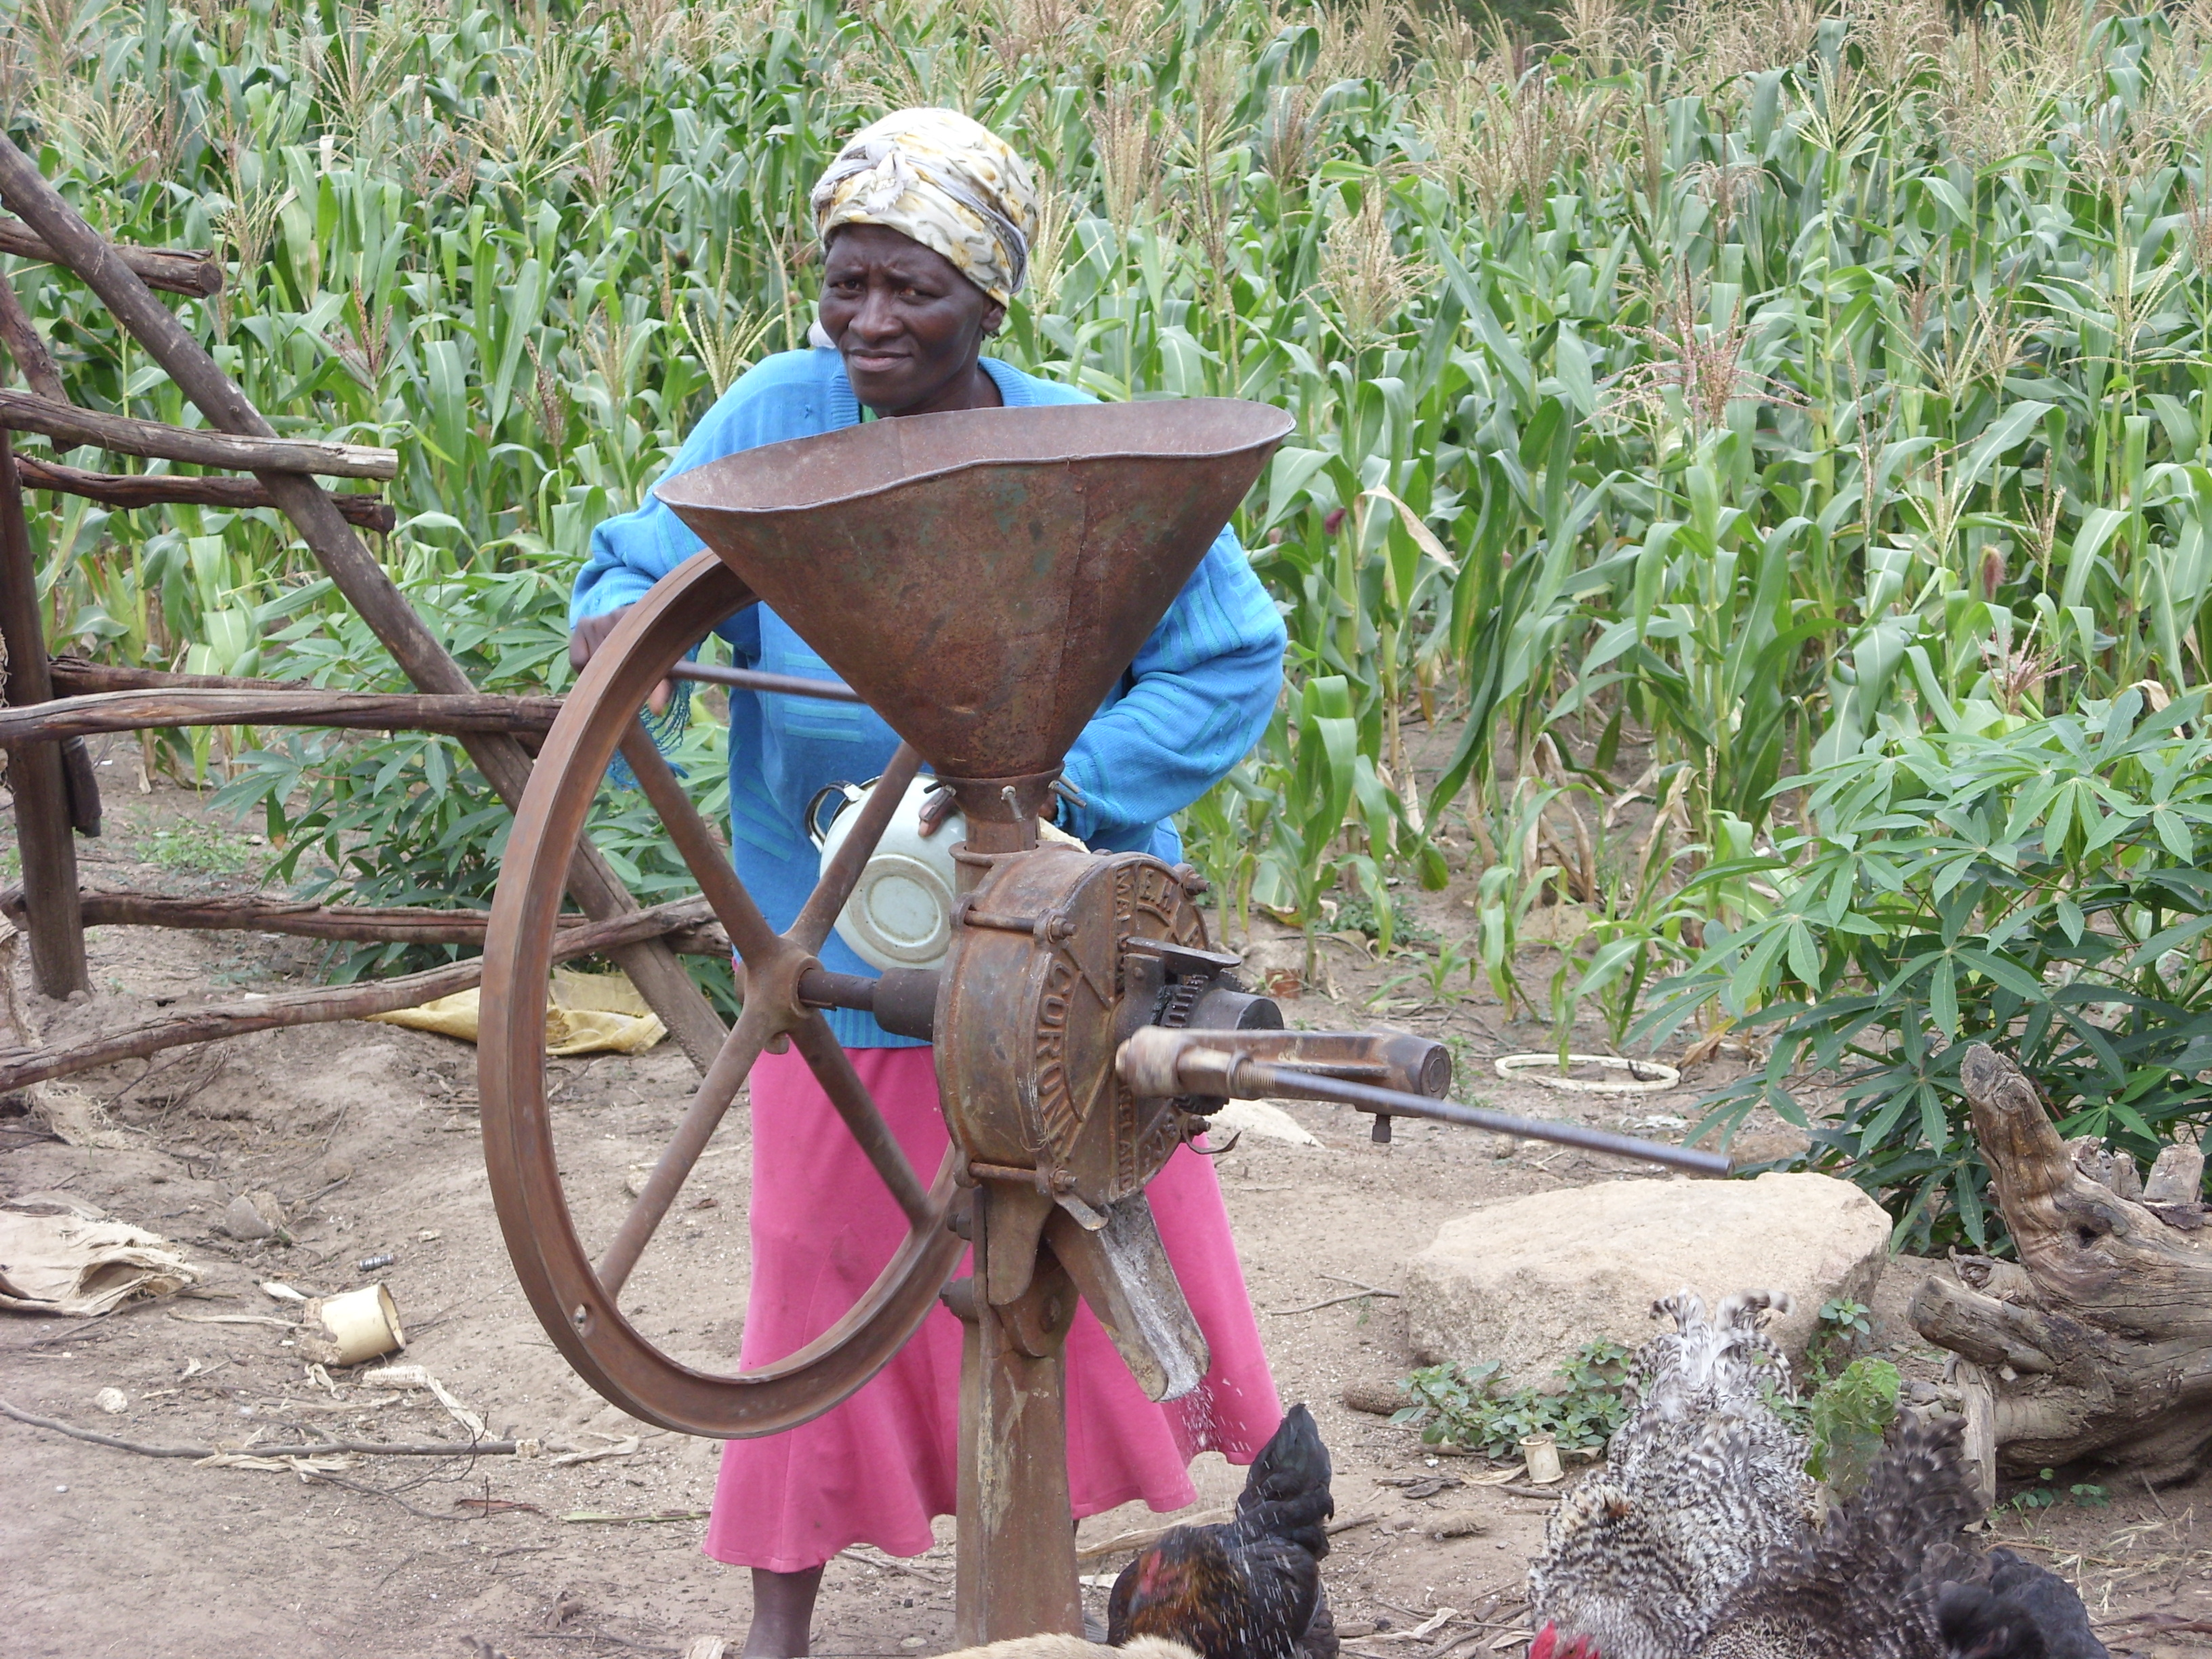 Grinding corn for food